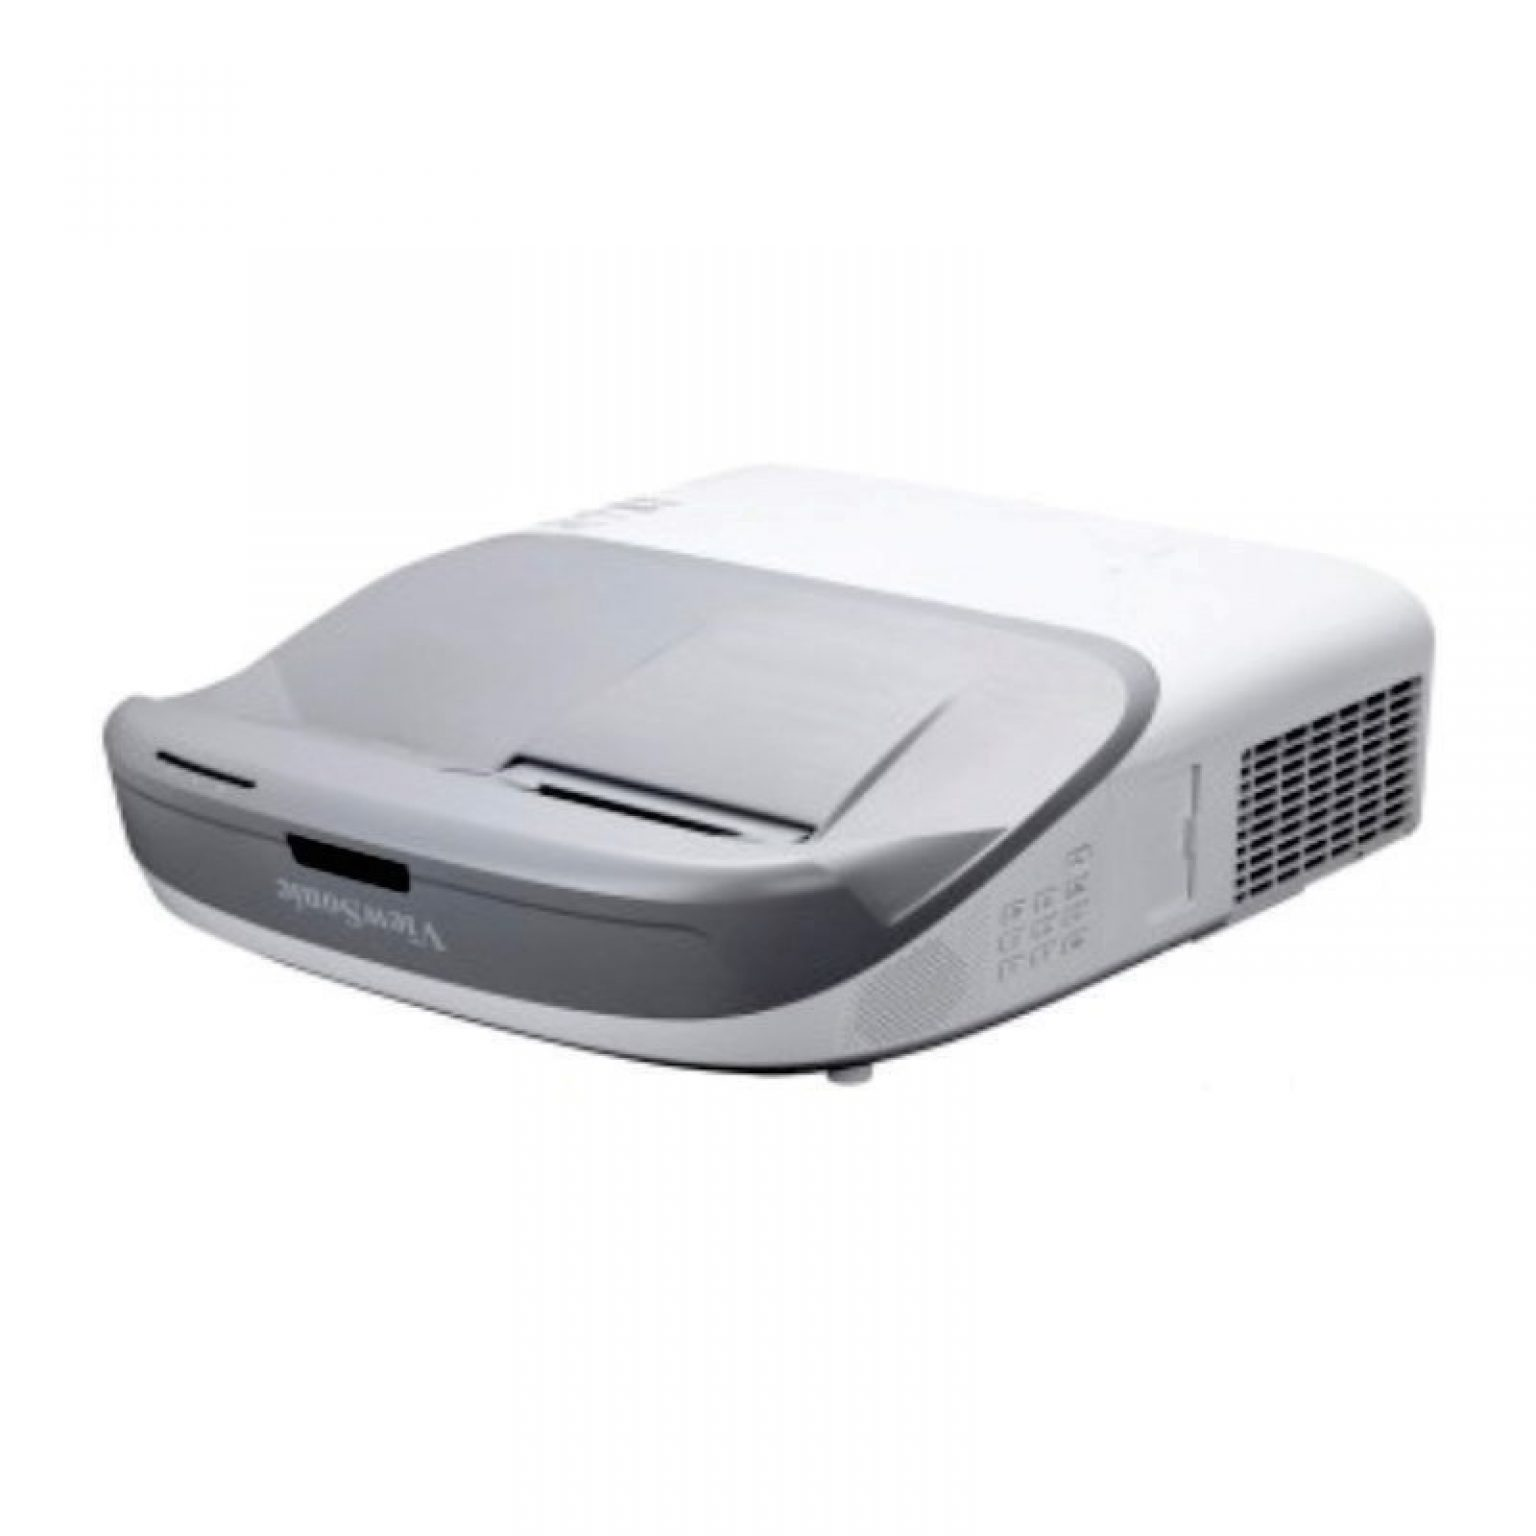 VIEWSONIC - Projector PS700X